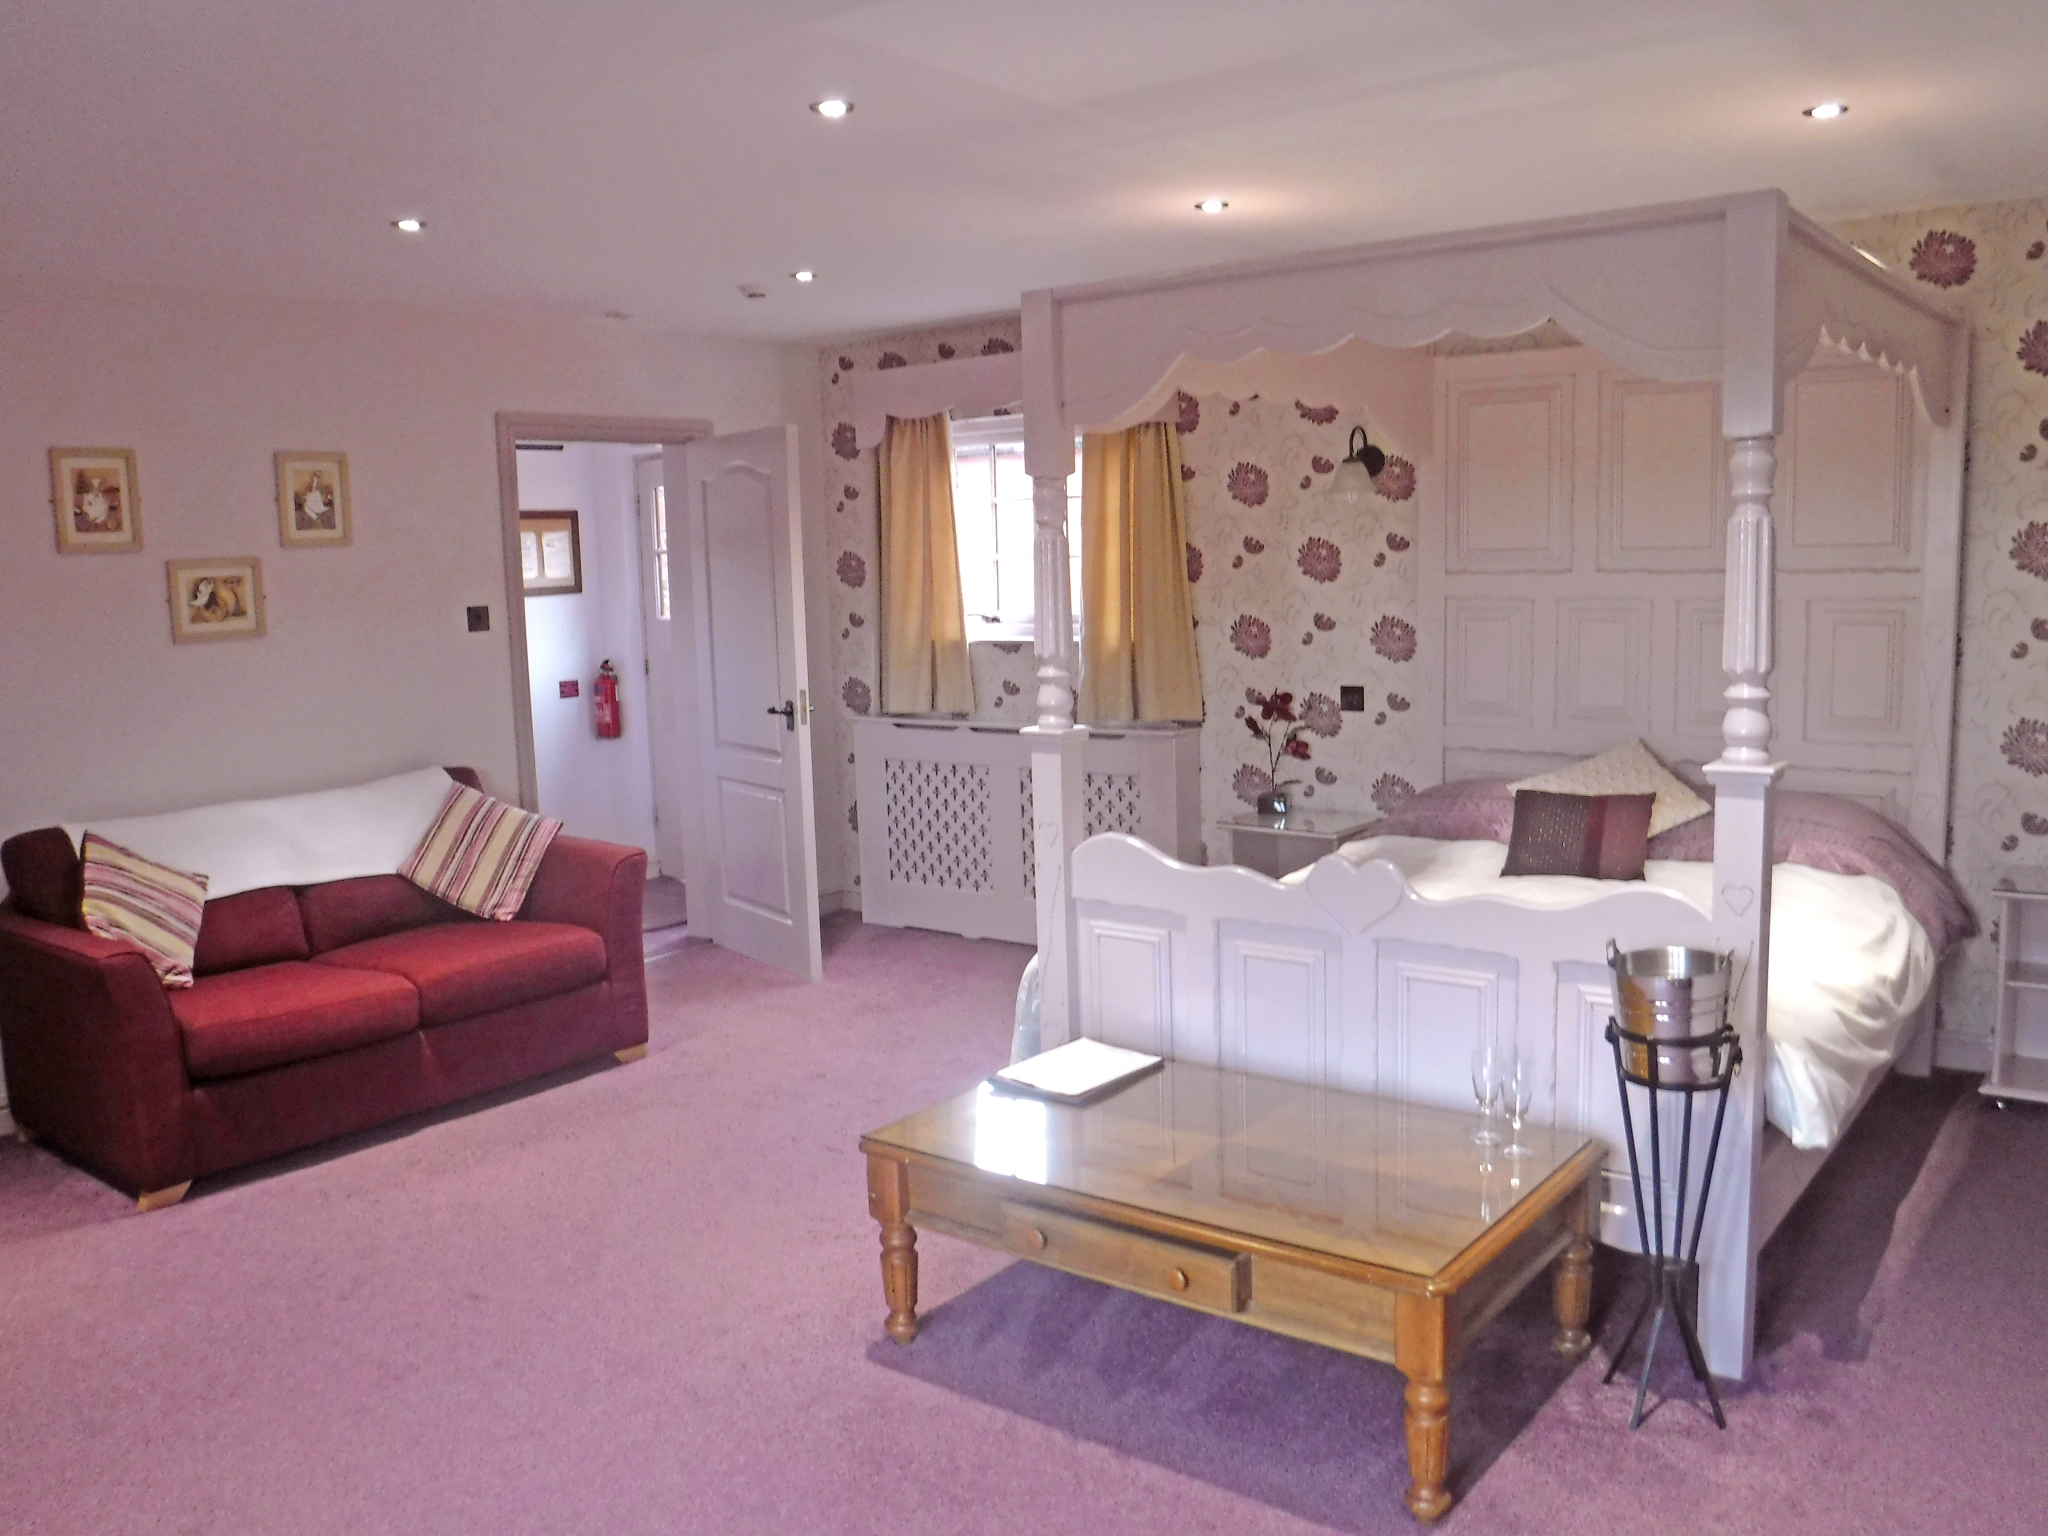 Gretna Green Hotels - Accommodation at The Mill Forge Hotel near Gretna Green